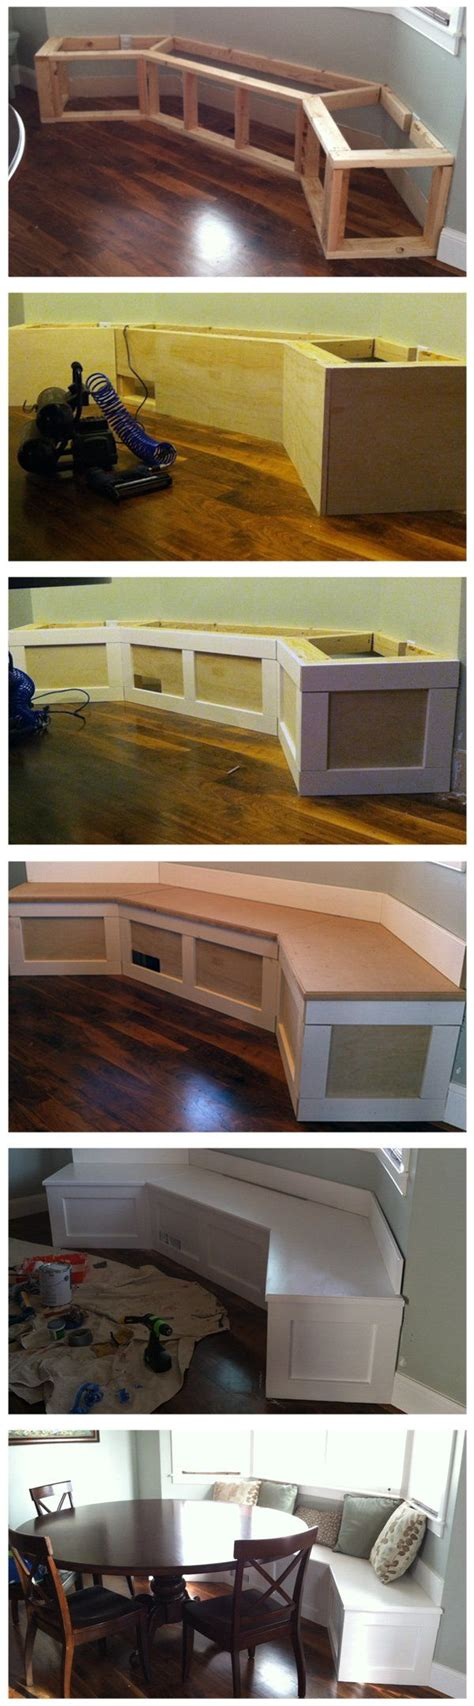 Diy Living Room And Kitchen All Diy Kitchen Ideas 11 Diy Home Creative